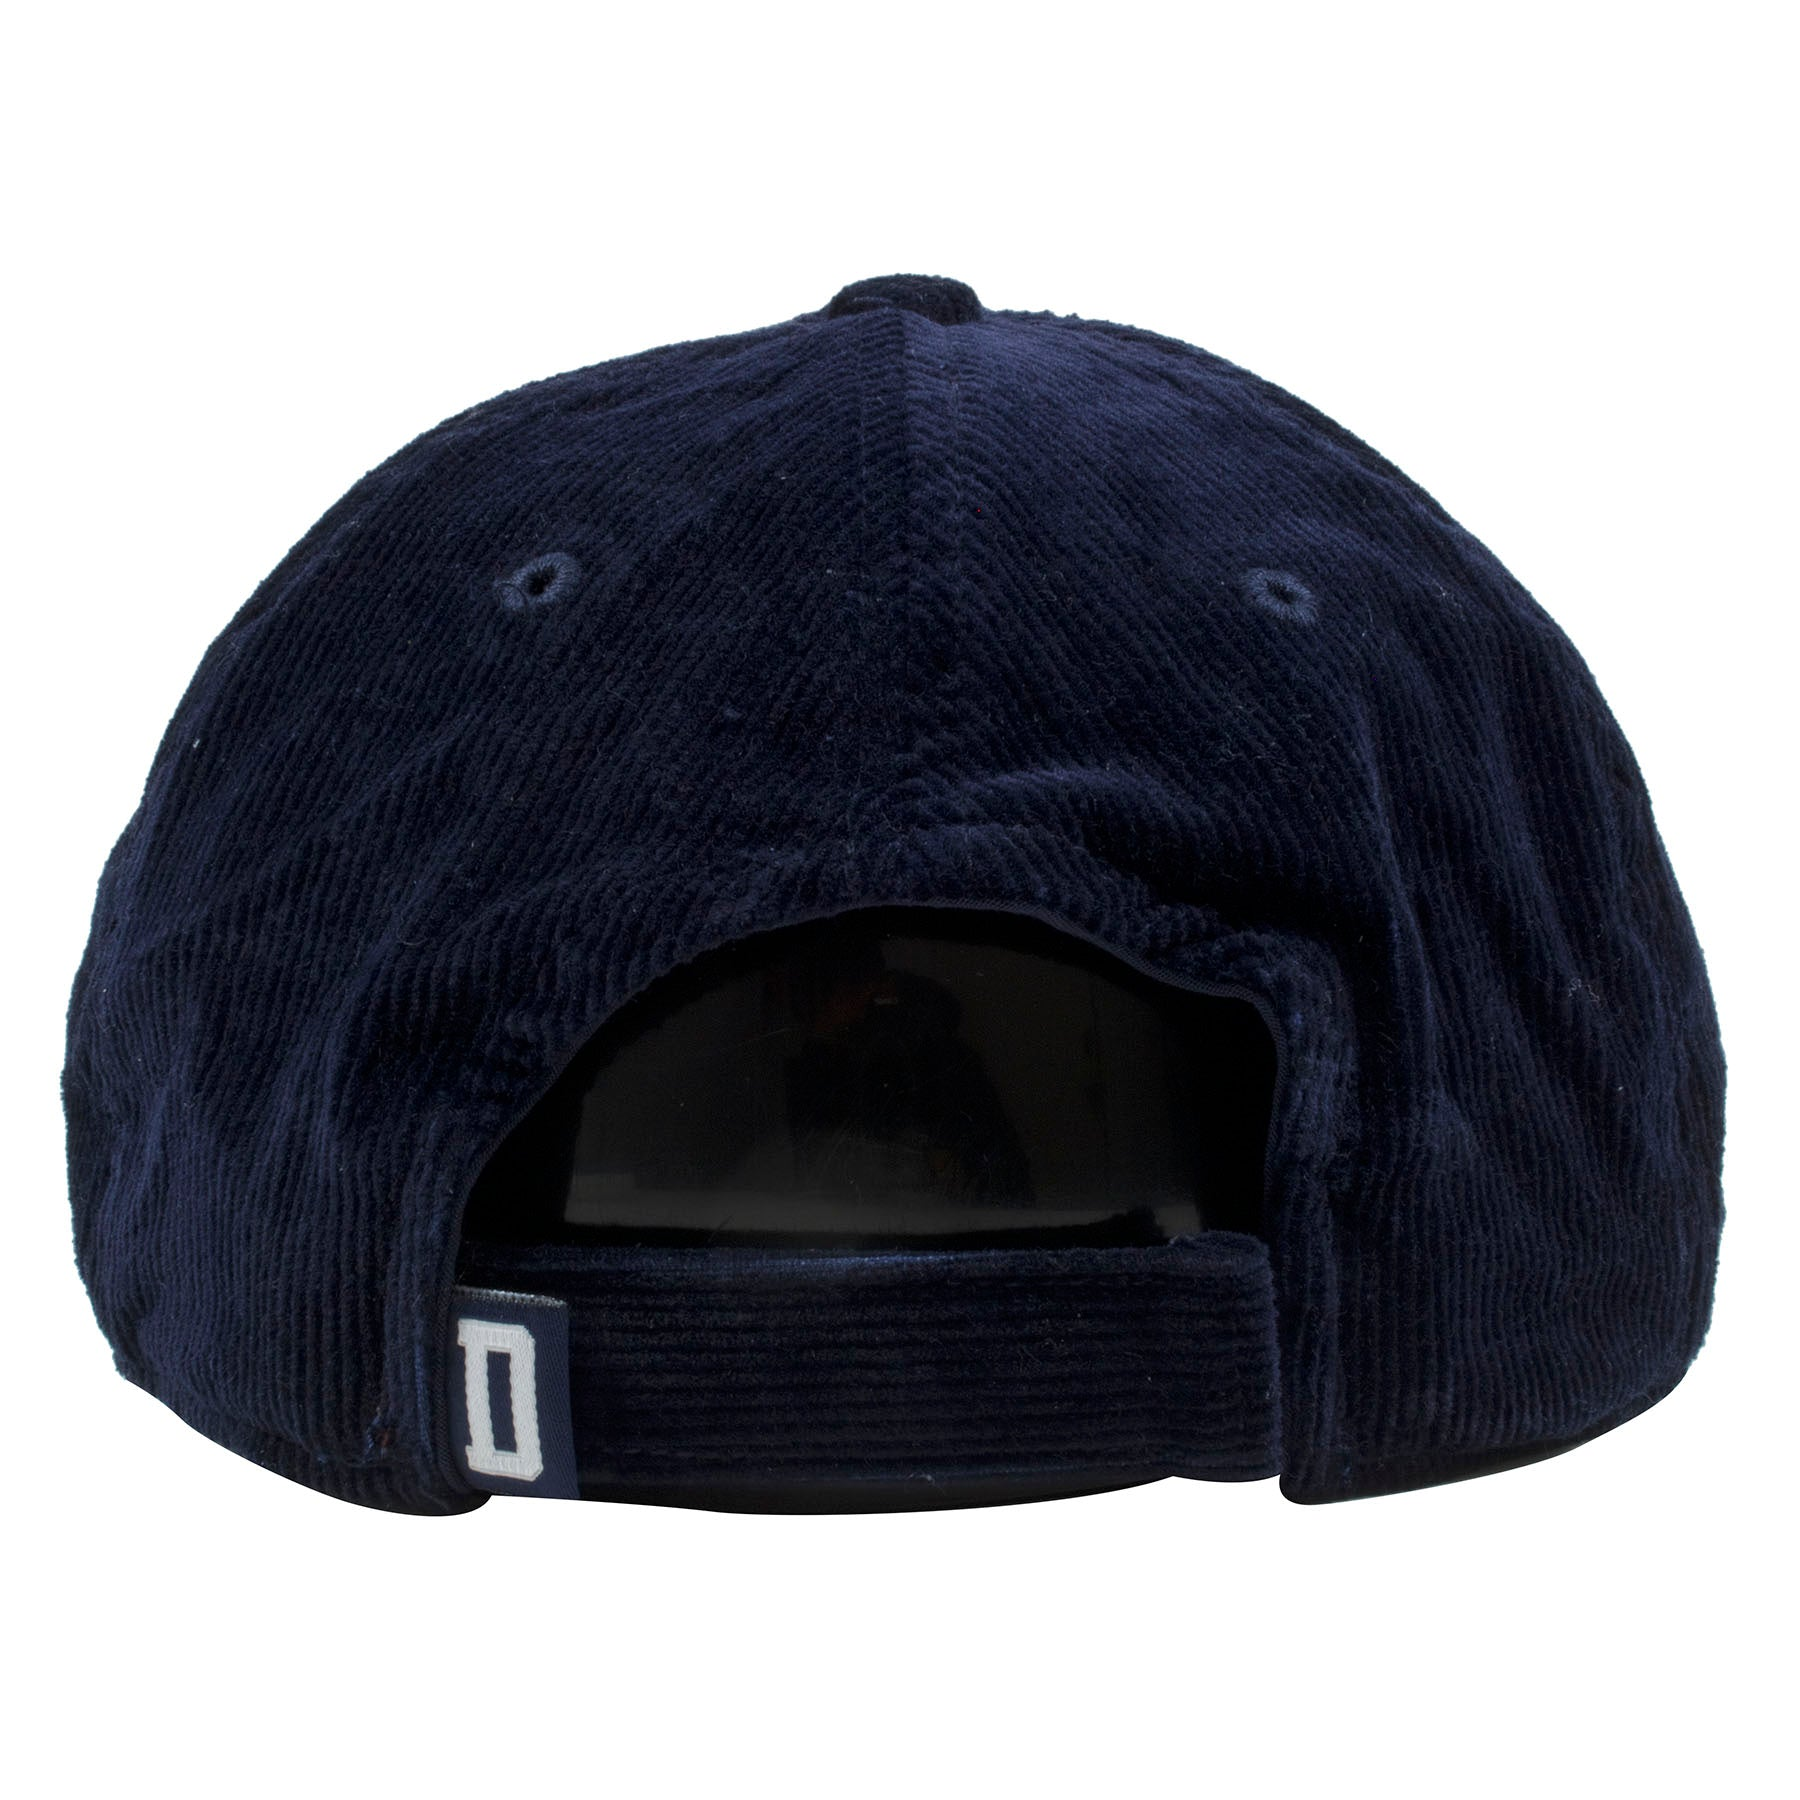 967f9027e43ff ... the back of the dallas cowboys navy blue corduroy dad hat has navy blue  adjustable strap